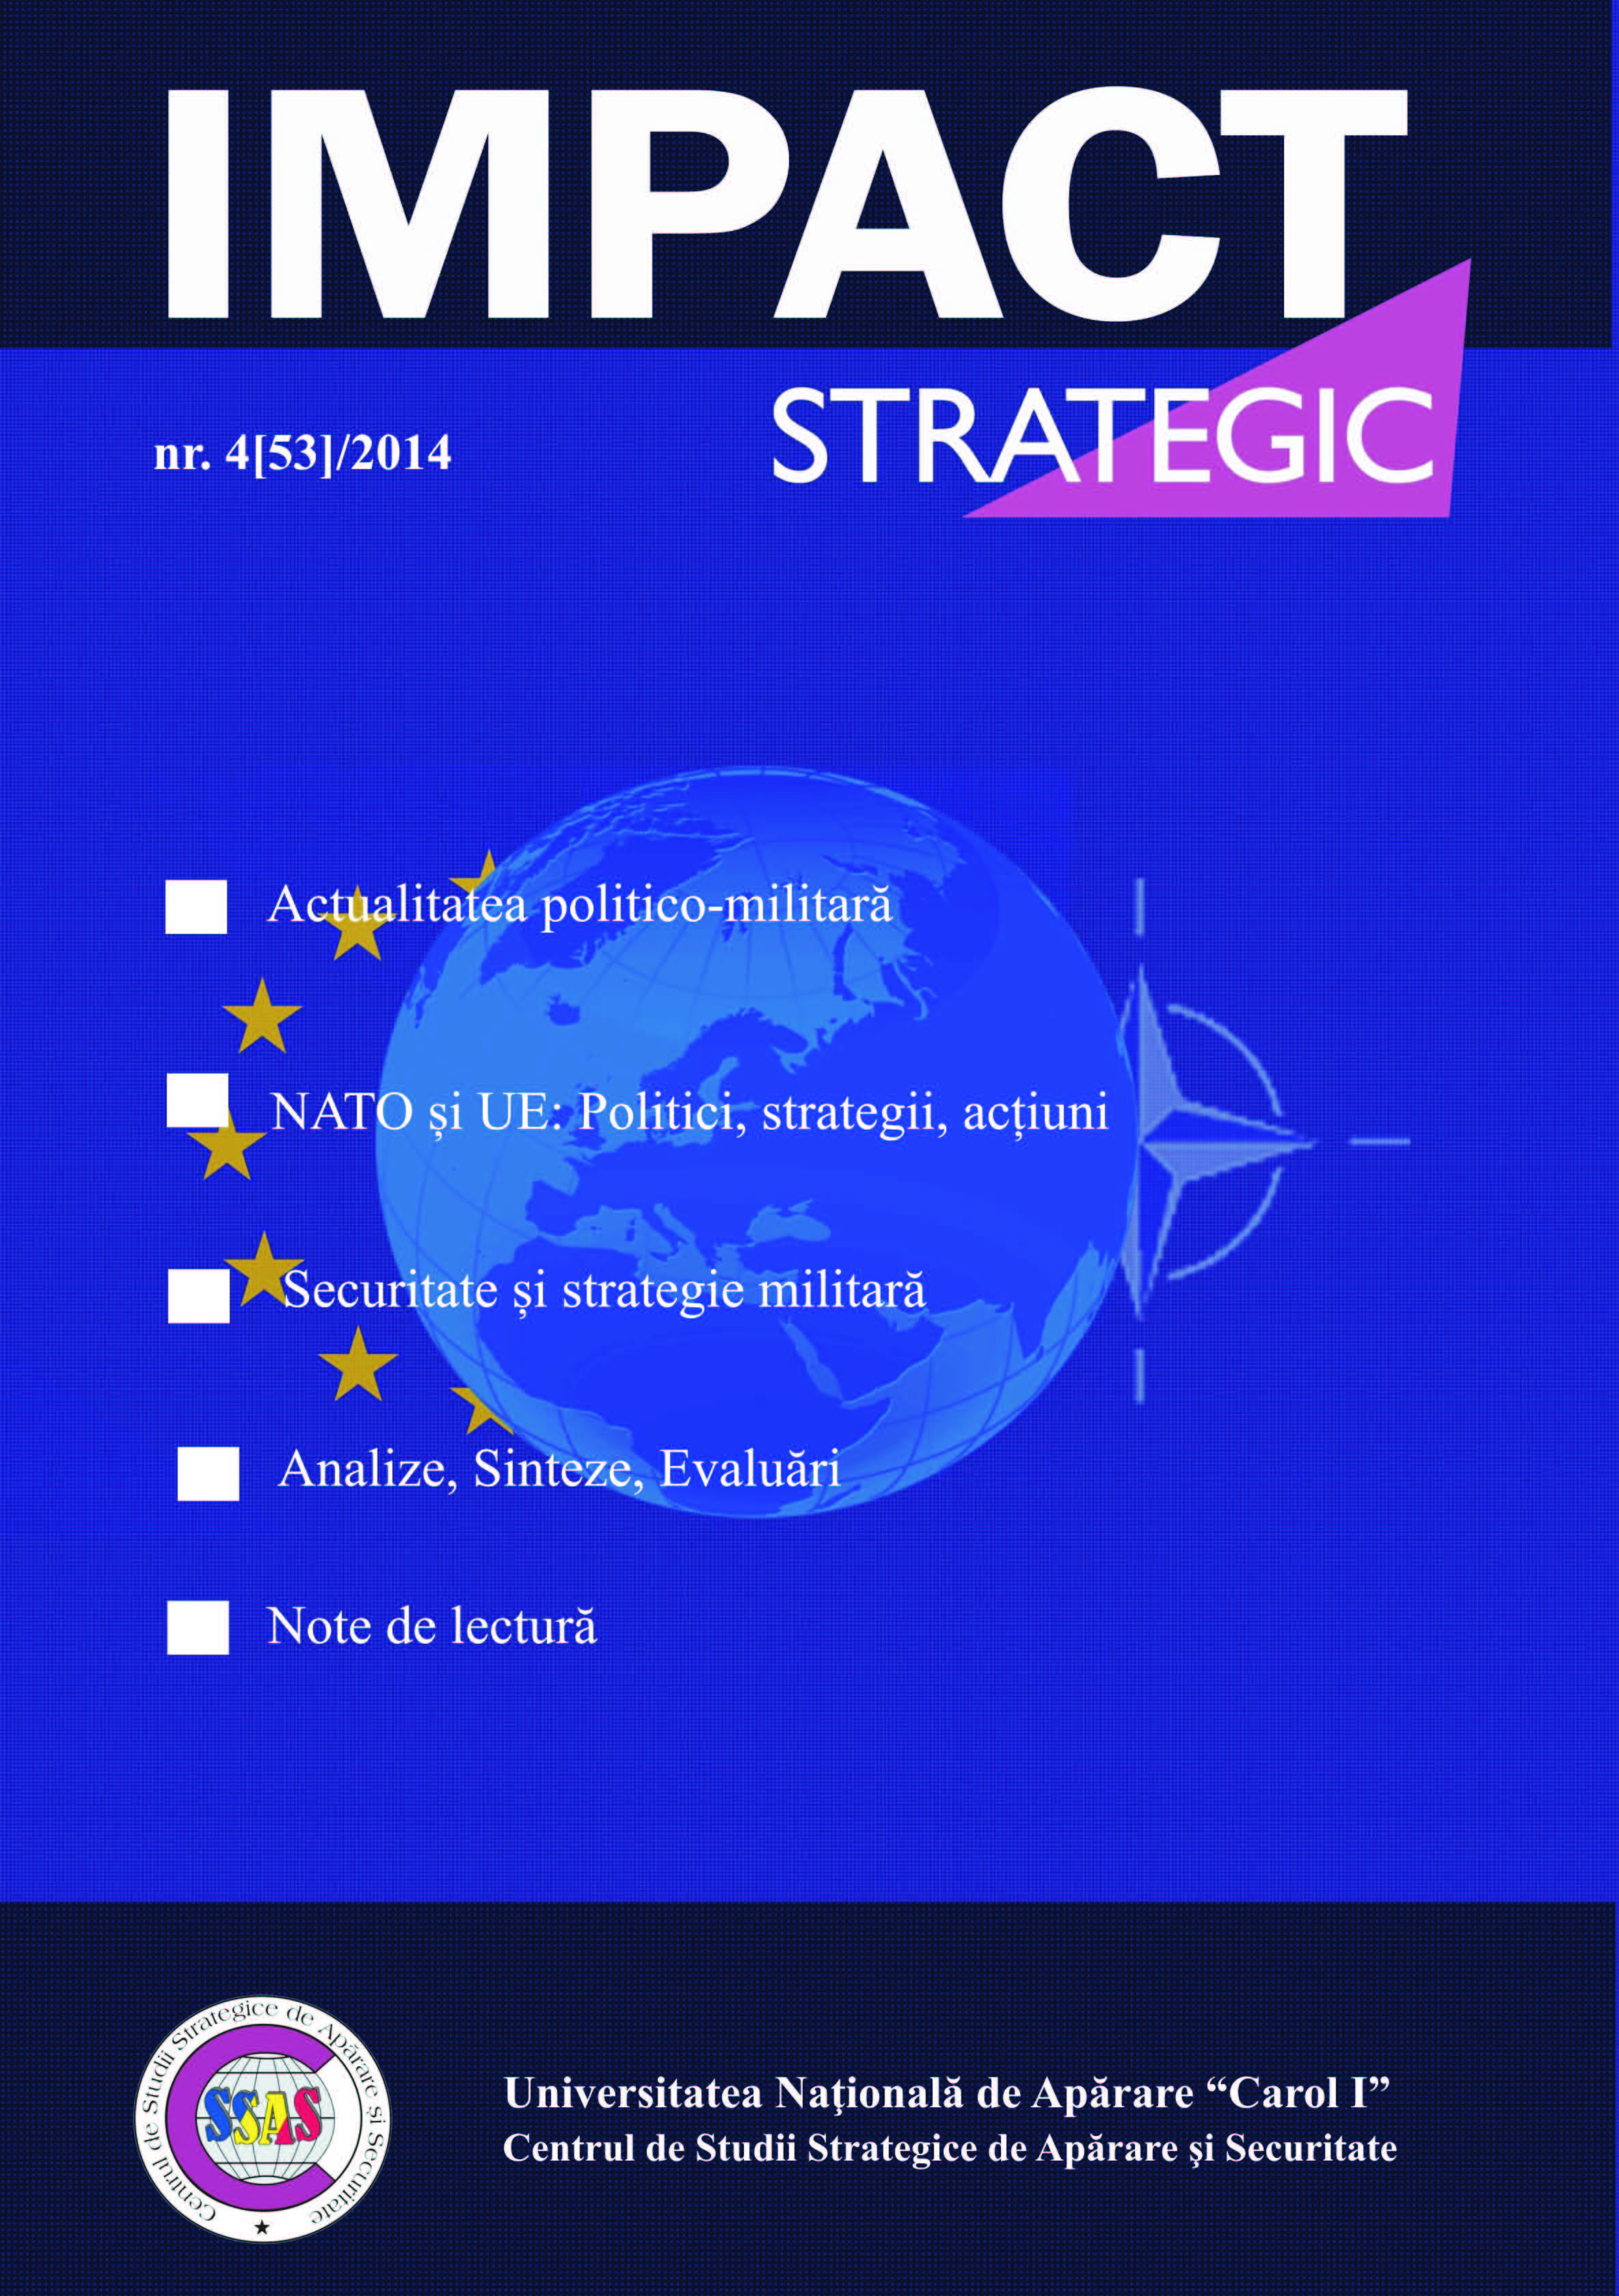 2014 NATO Summit – Future Implications Cover Image